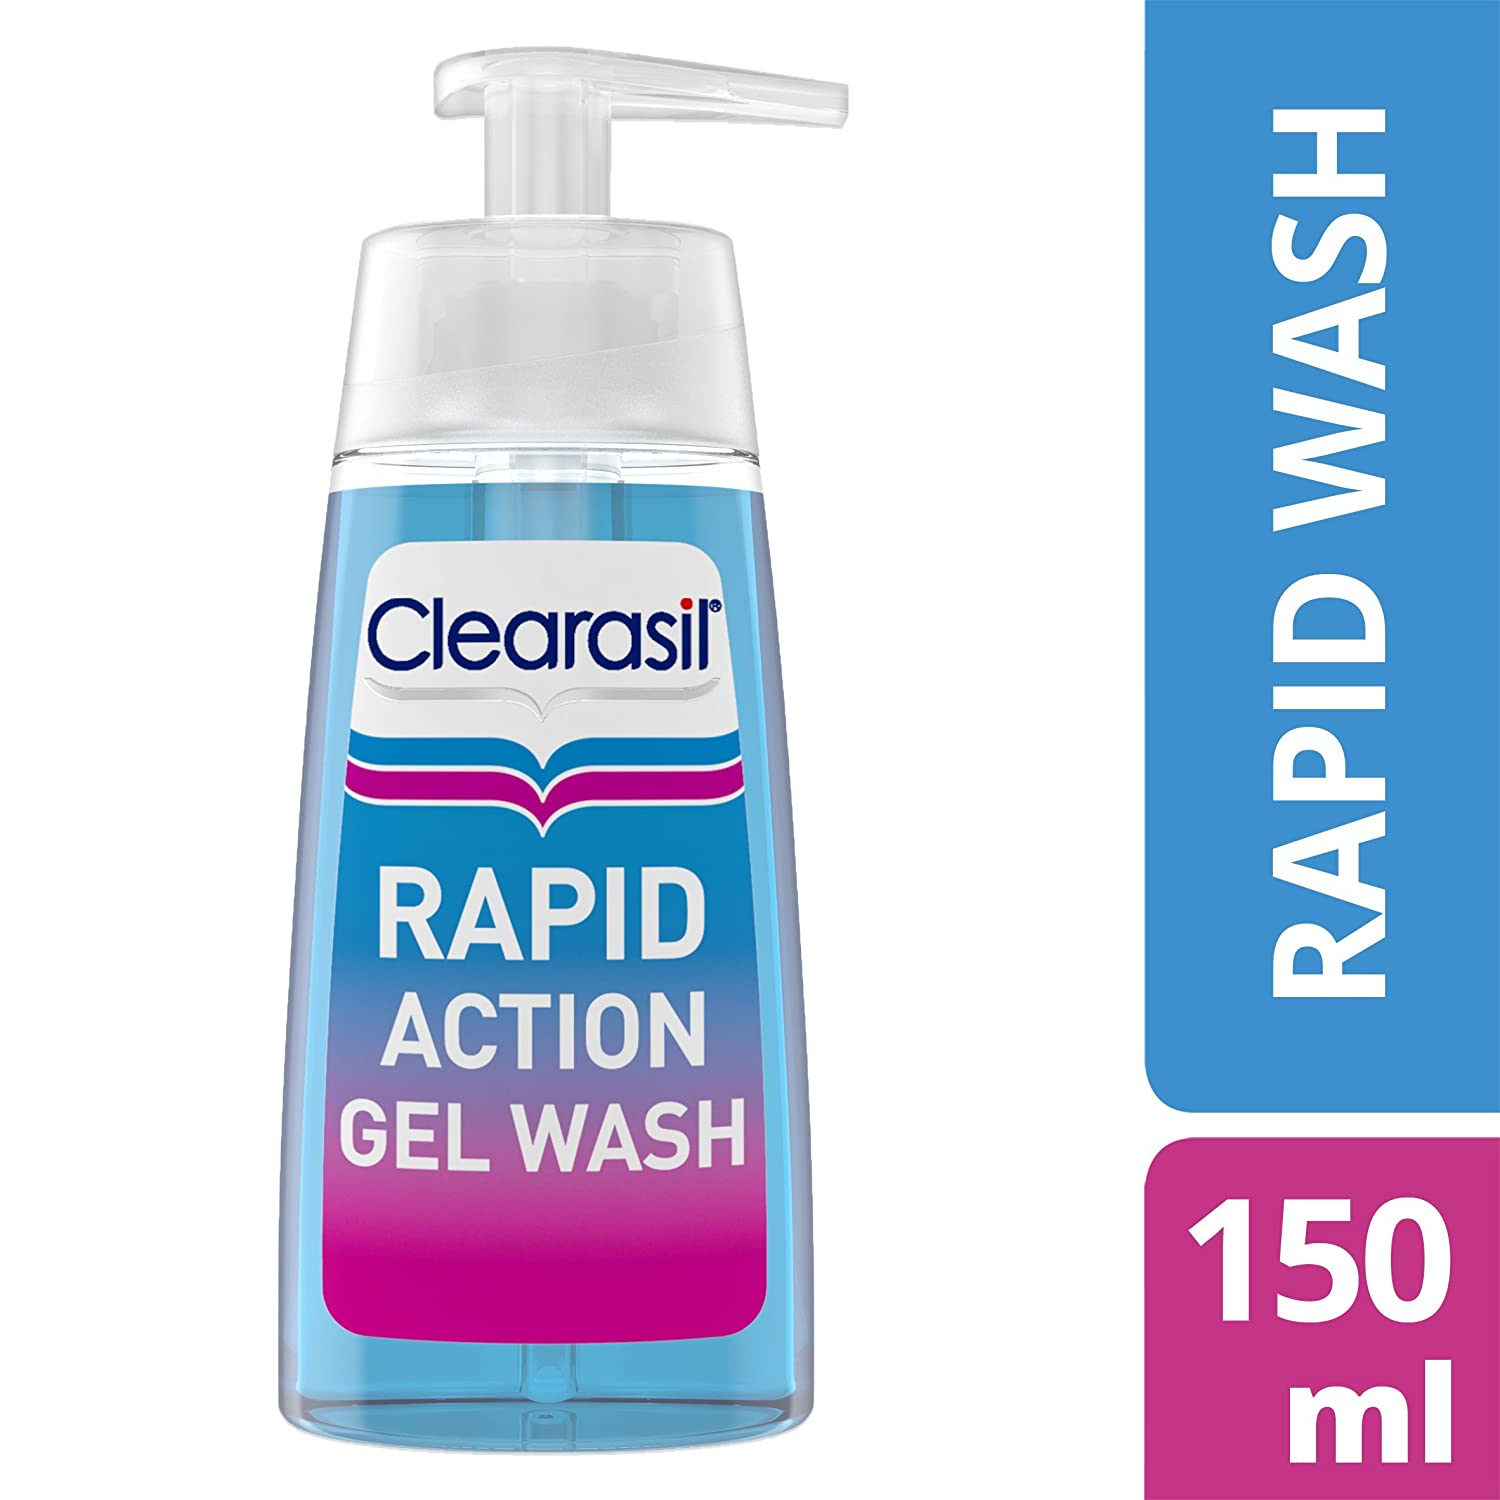 Clearasil Ultra Rapid Action Gel Wash 12 hours 8035208